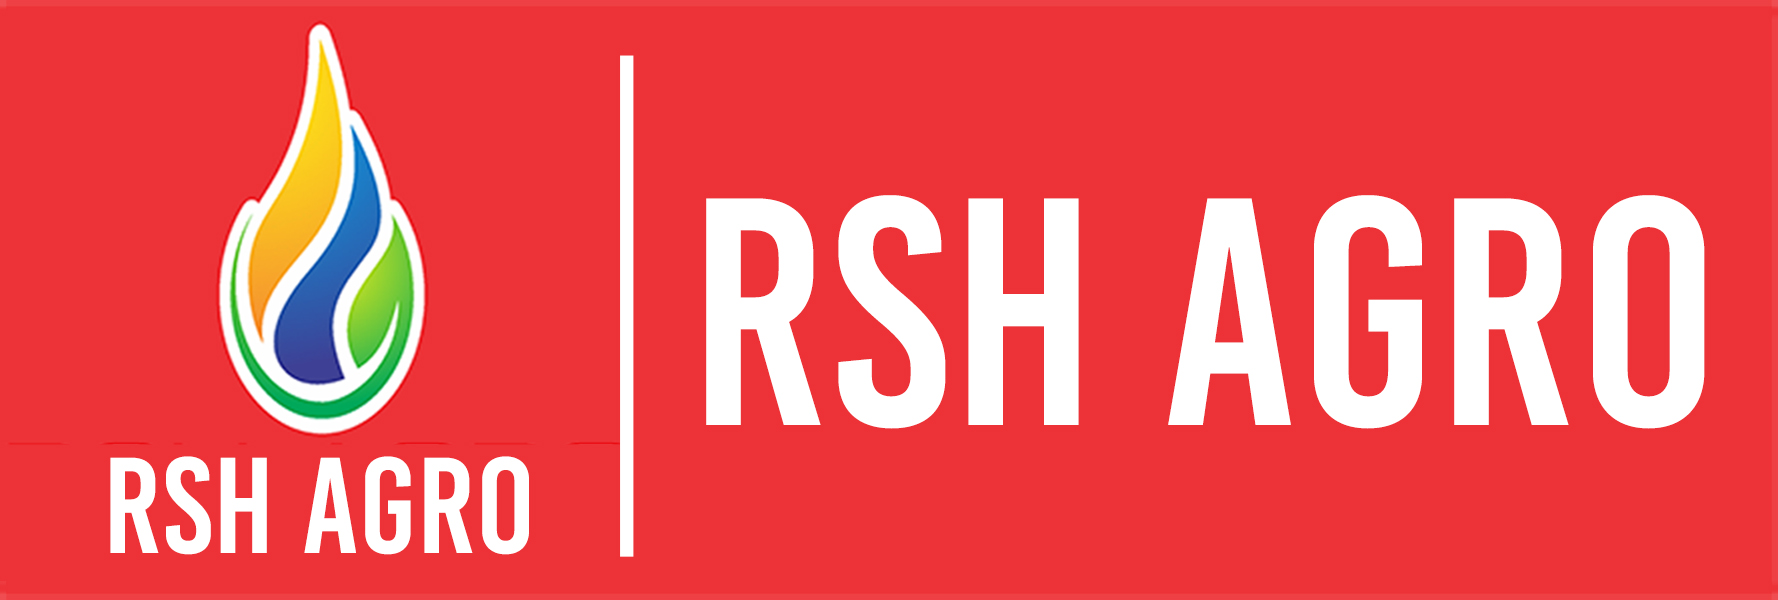 R.S.H. Agro Products Ltd.